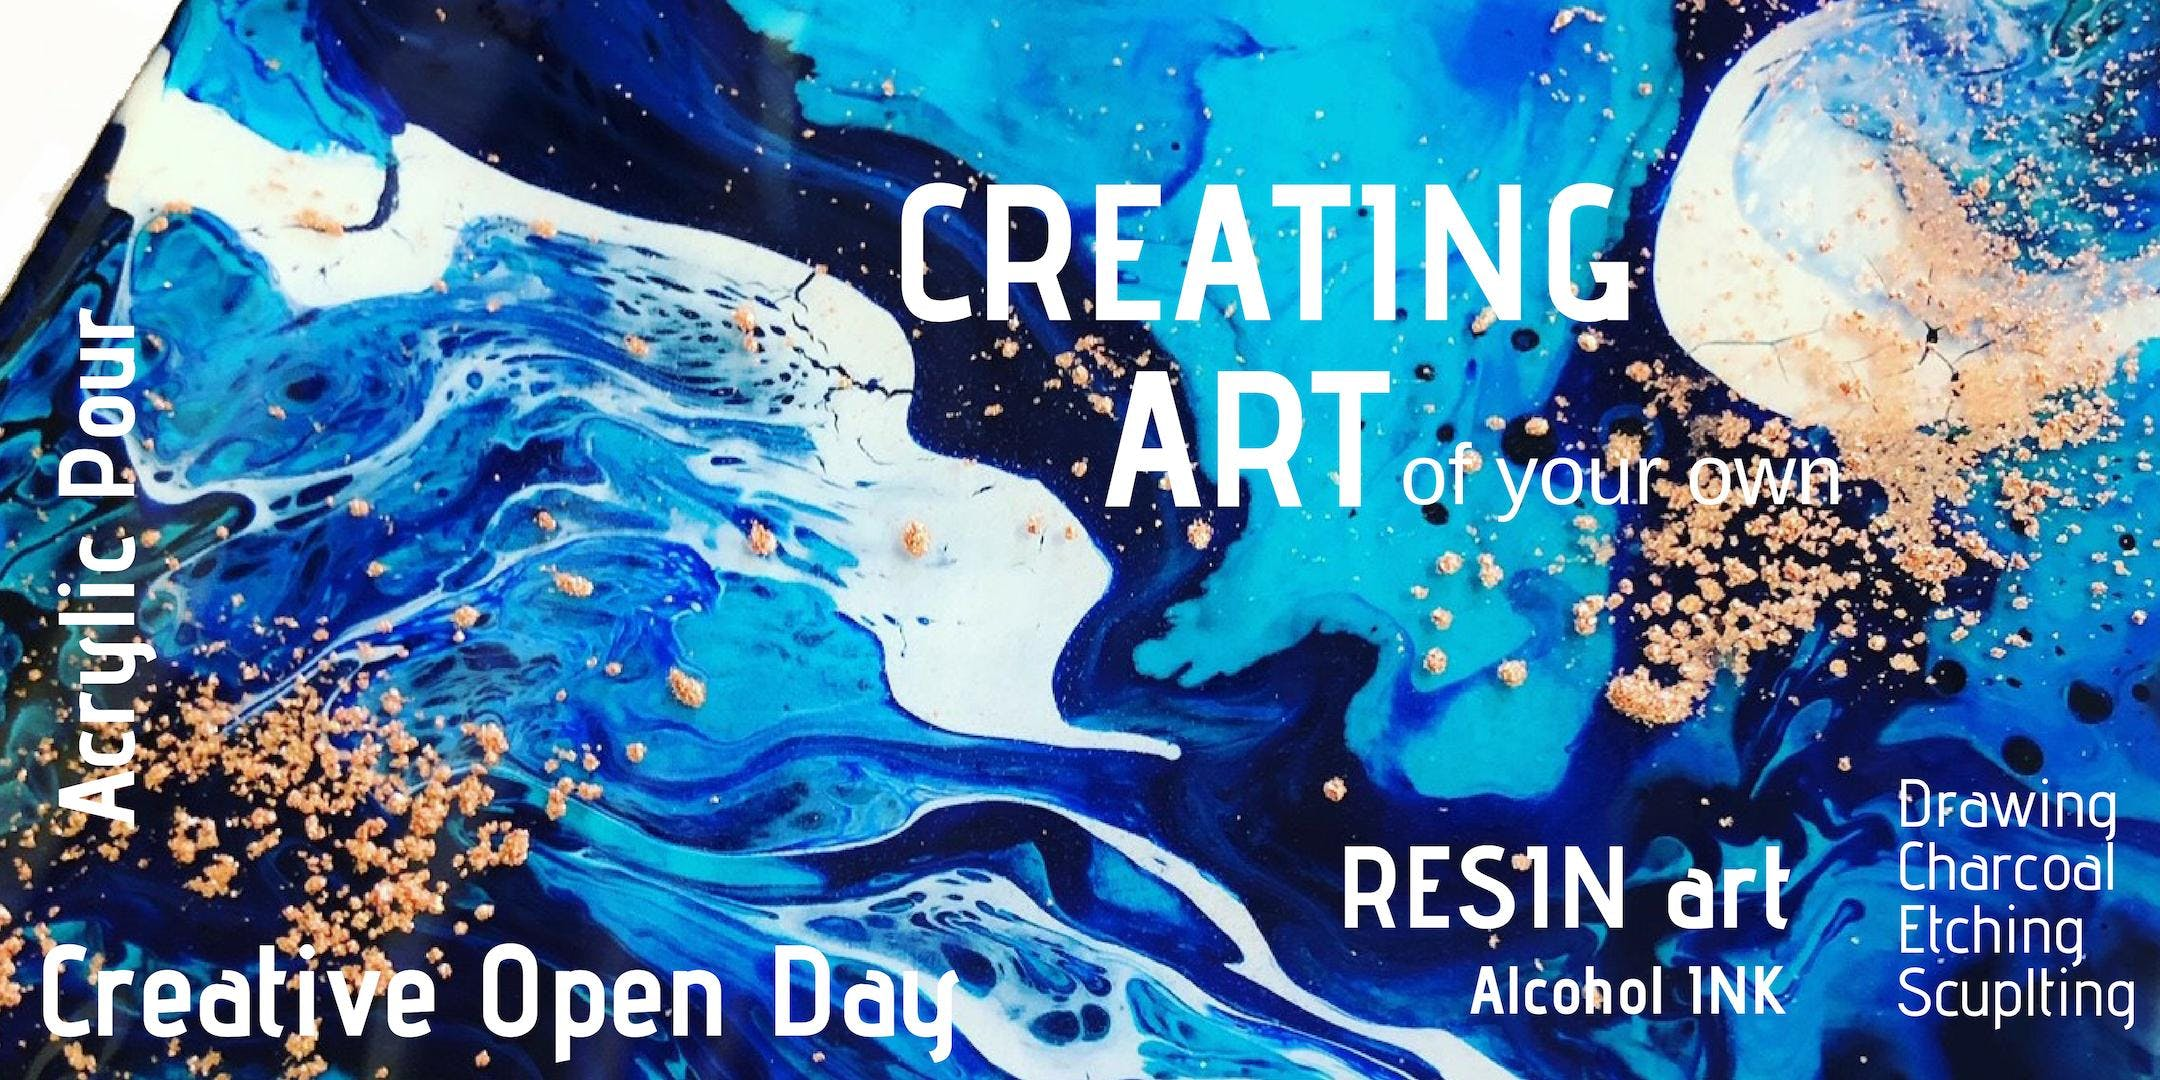 Creating Art - Sunday 17th Feb 12:30pm